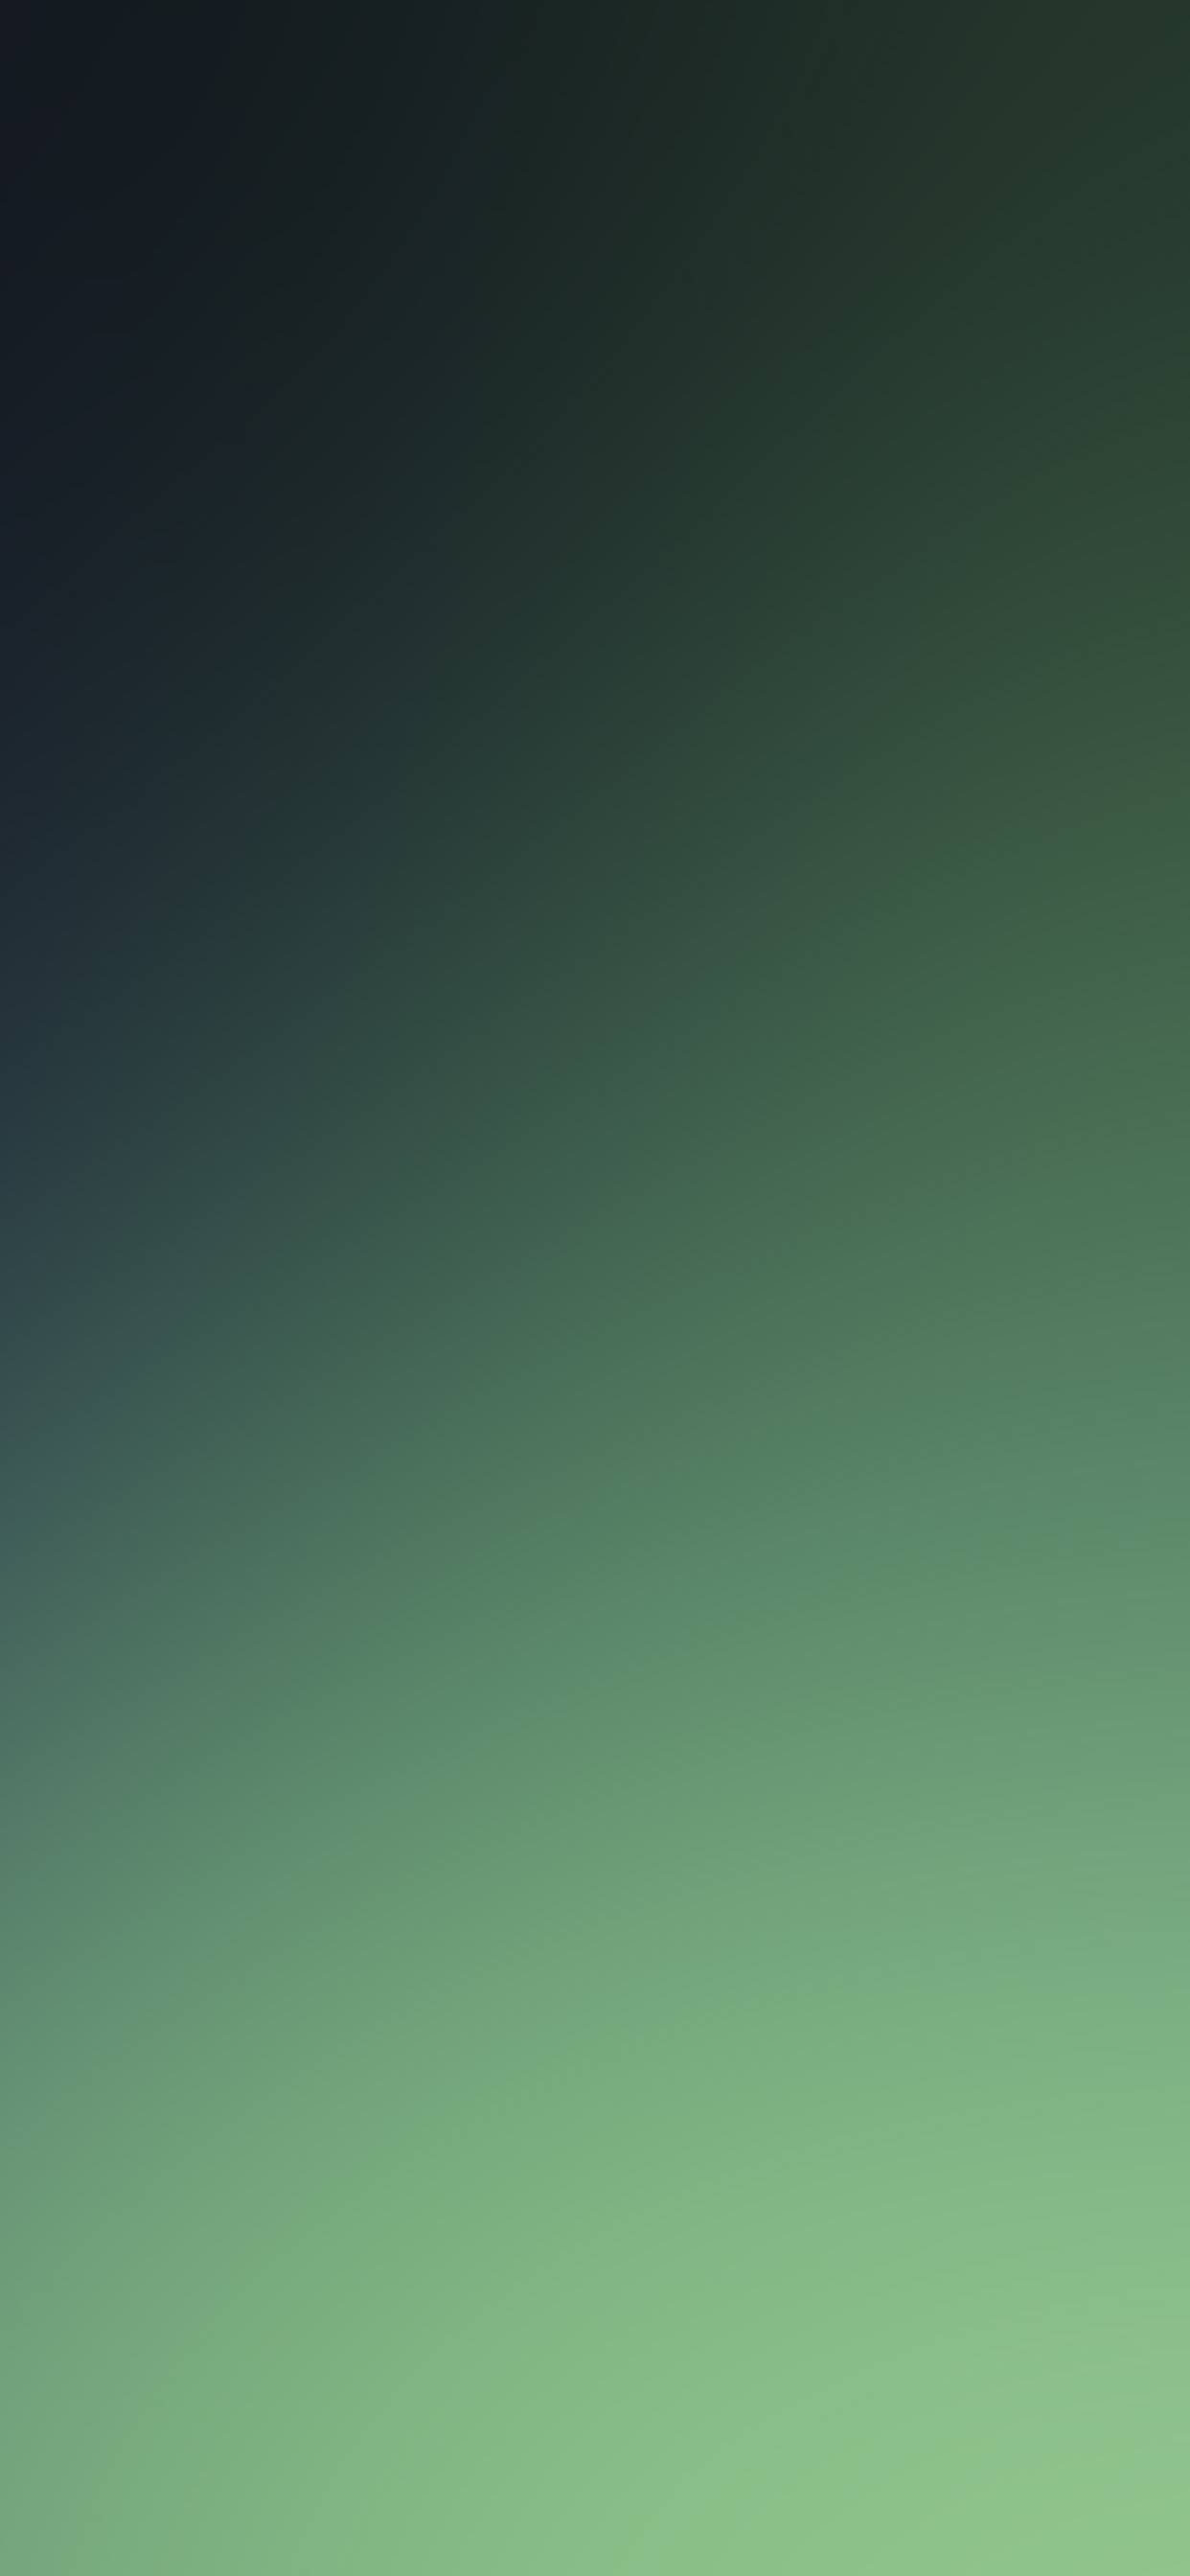 iPhone wallpaper green softpng Fonds d'écran iPhone du 24/10/2018